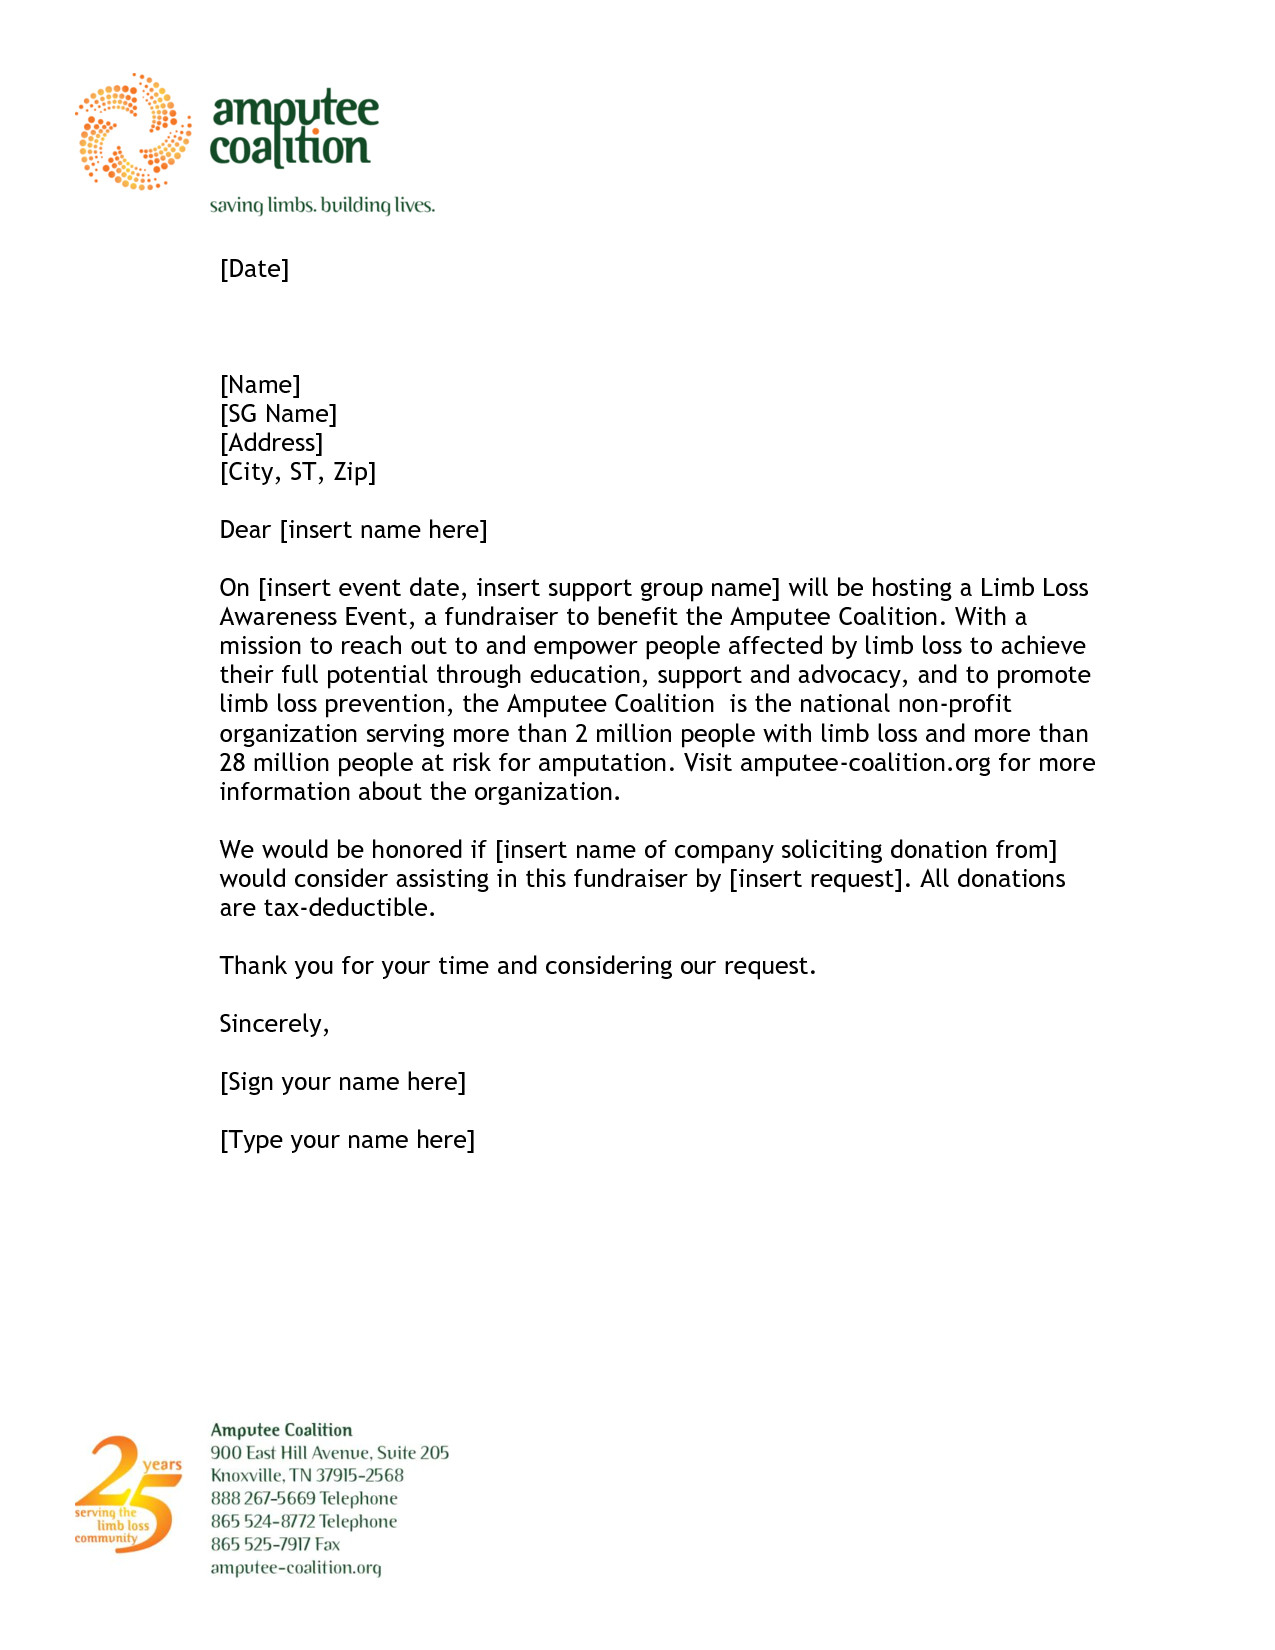 Fundraising Request for Donation Letter Template - 20 New Letter Template for Donations Request